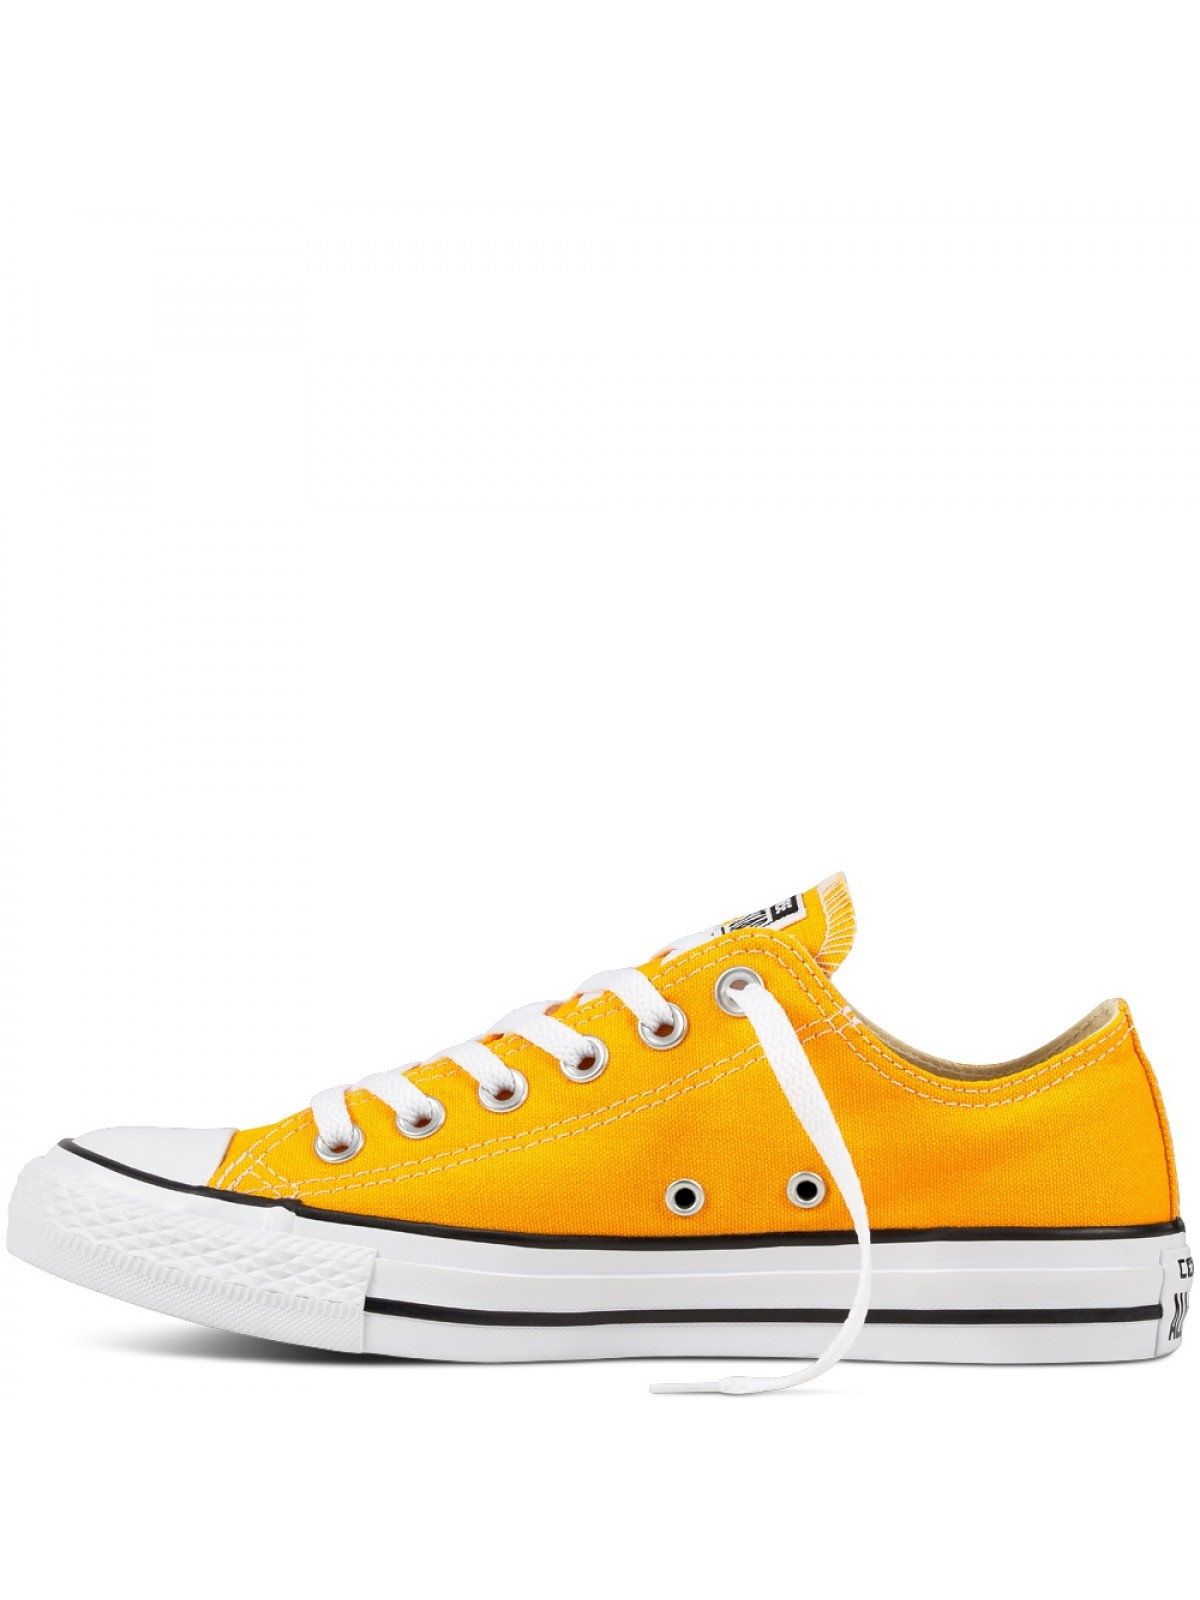 Converse Chuck Taylor all star toile basse orange ray